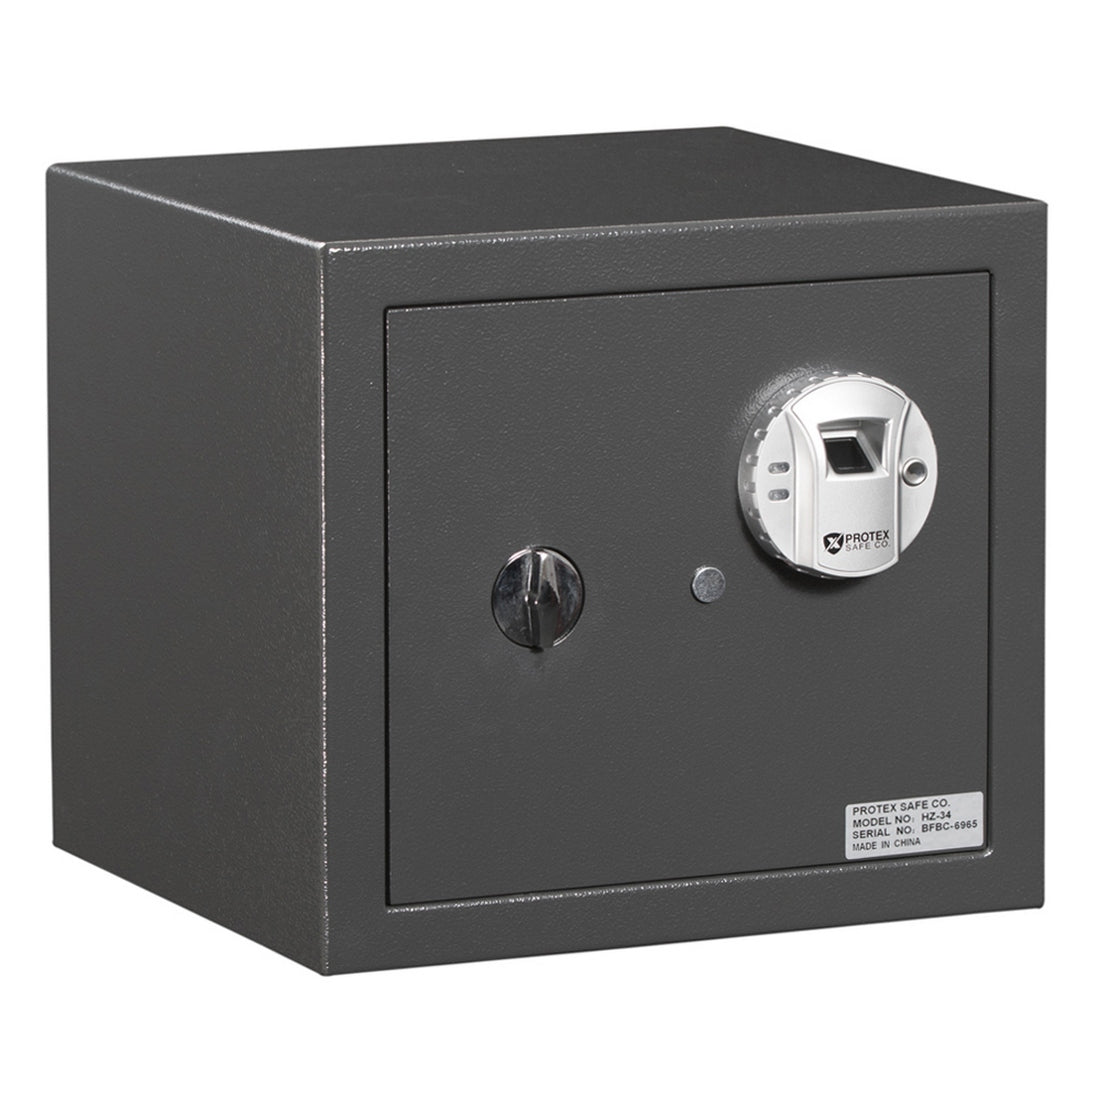 Protex Safe HZ-34 Biometric Burglary Safe